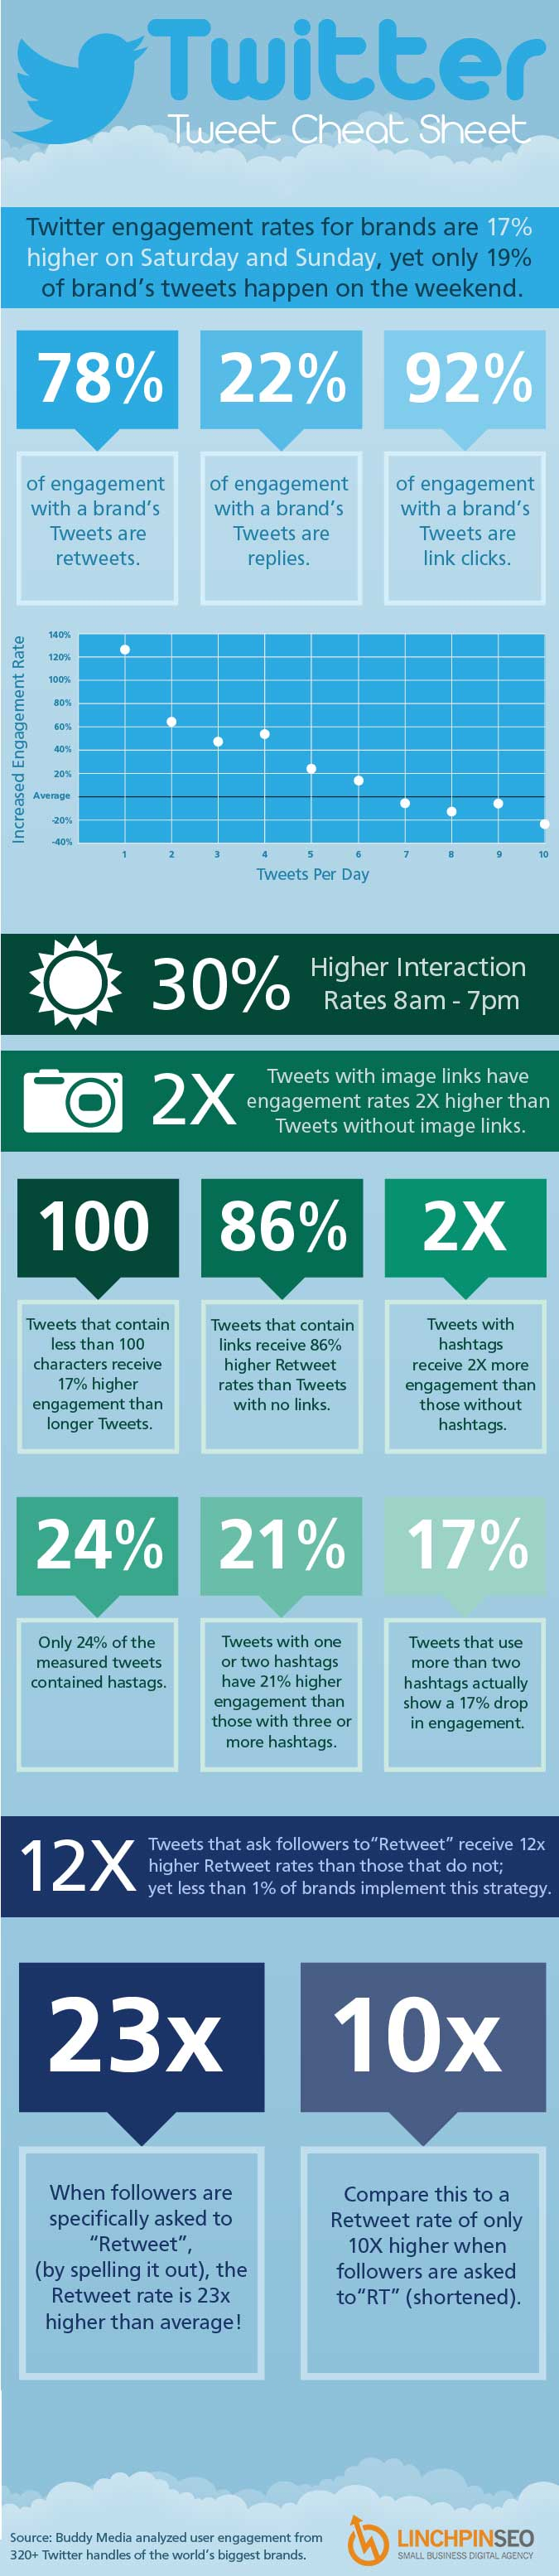 Why You Must Tweet More Images and Other Awesome Twitter Facts [Infographic] by Linchpin SEO http://sociallysorted.com.au/tweet-more-images-twitter-facts-infographic/